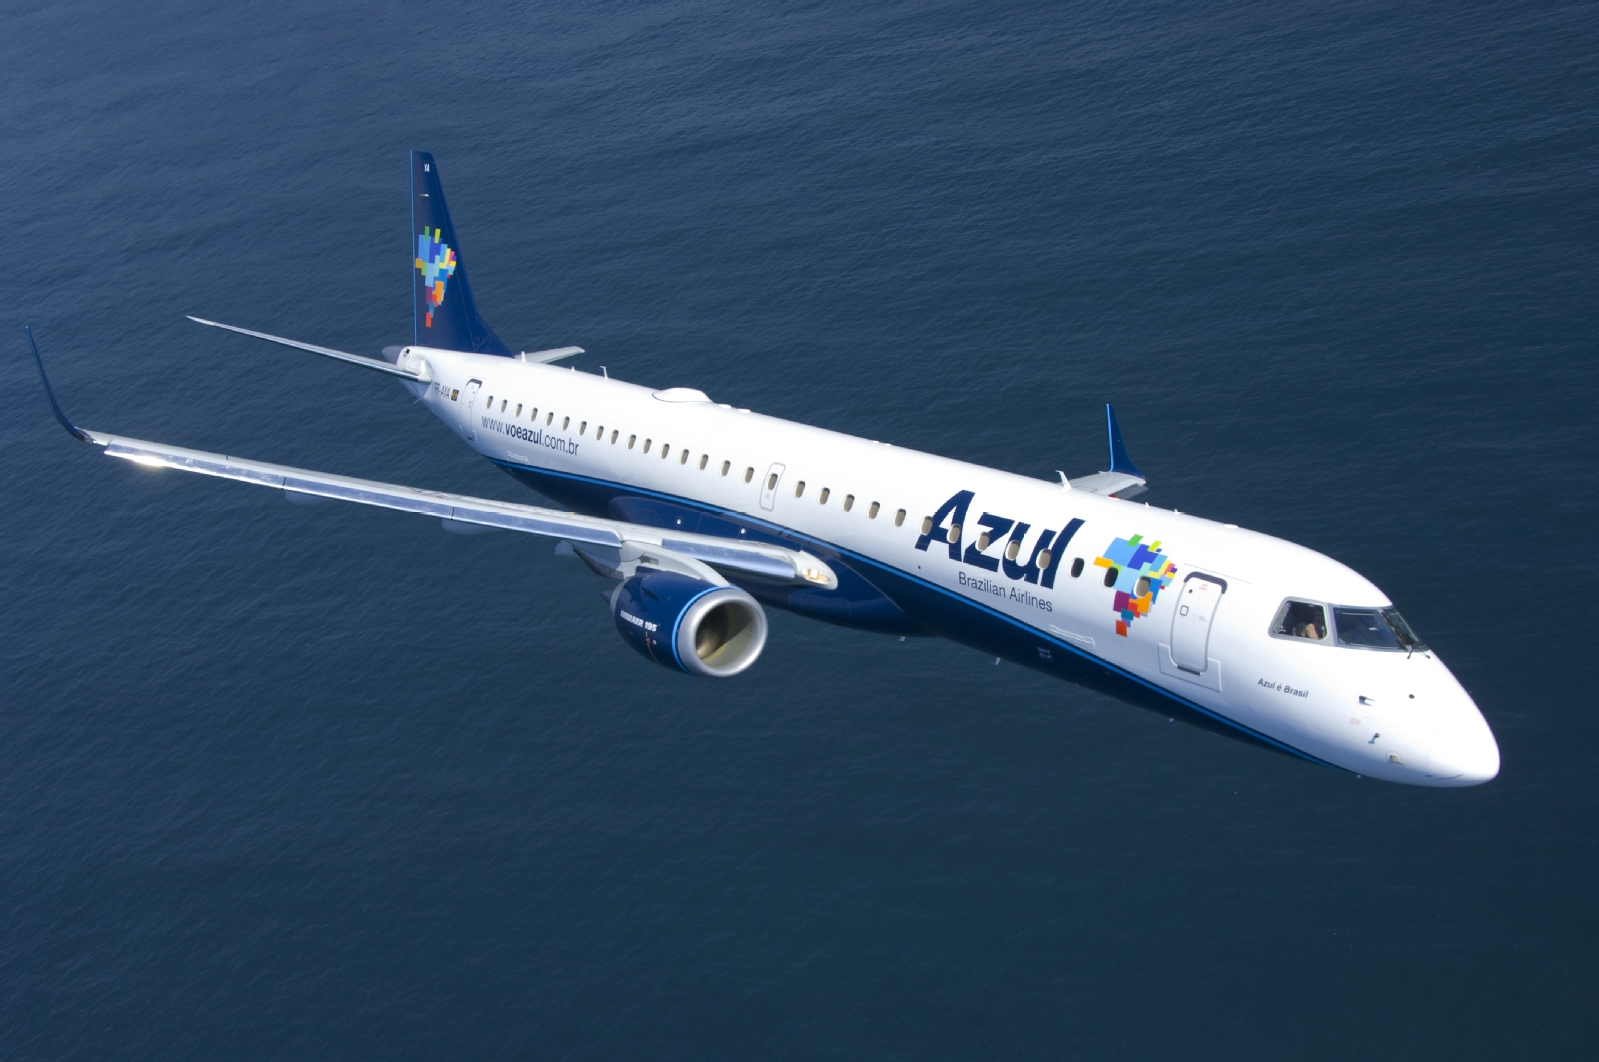 Azul shareholders approve aircraft lease for Breeze